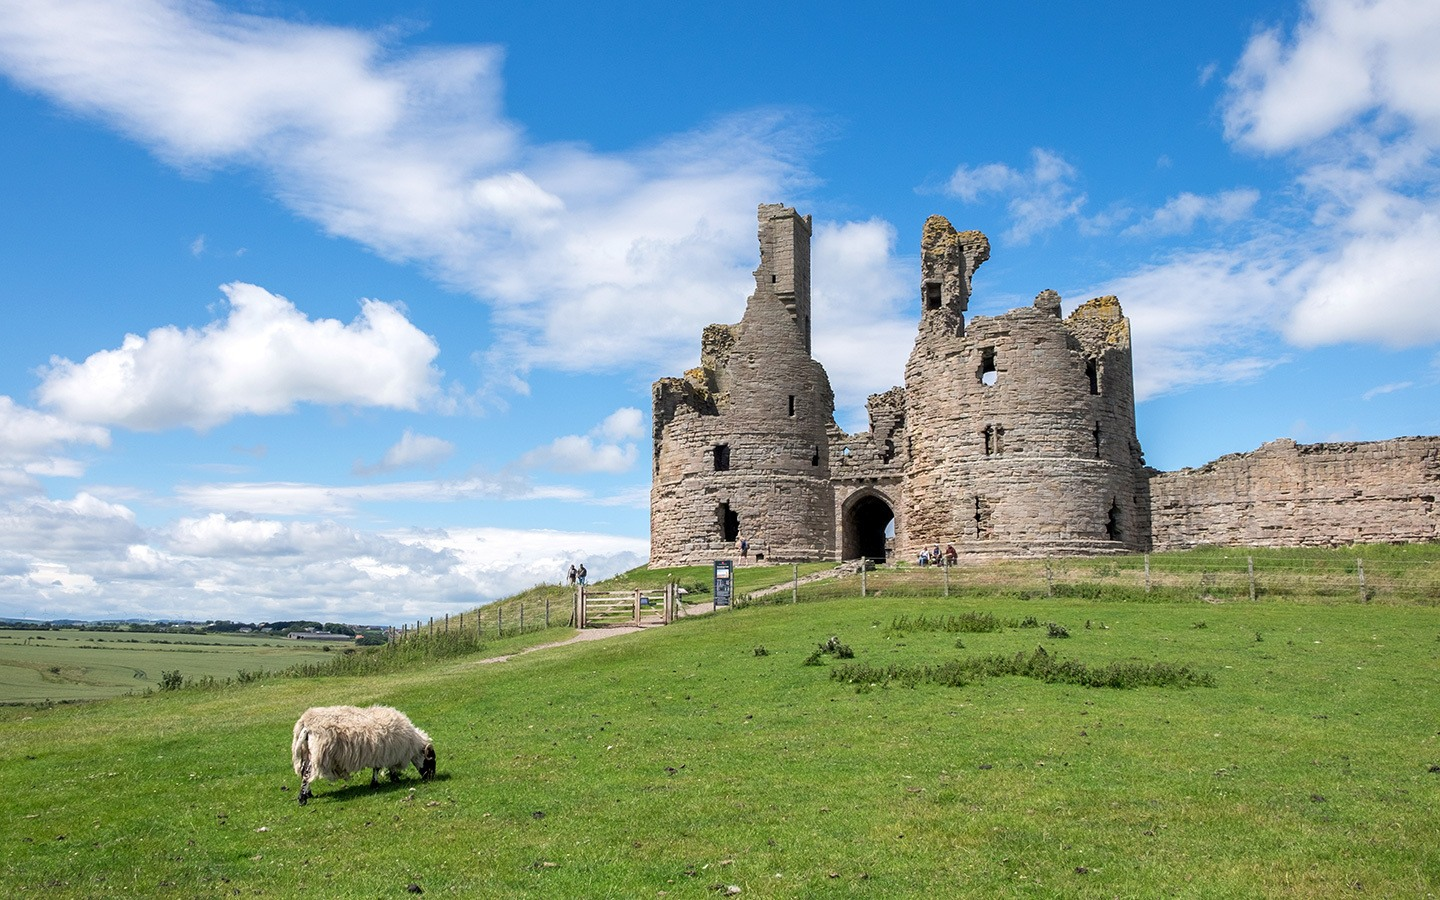 How to spend a weekend in Alnwick in Northumberland, England, with tips on what to see, do, eat and drink on a 48-hour escape to this beautiful stretch of coastline with its castles, beaches, gardens and seafood.